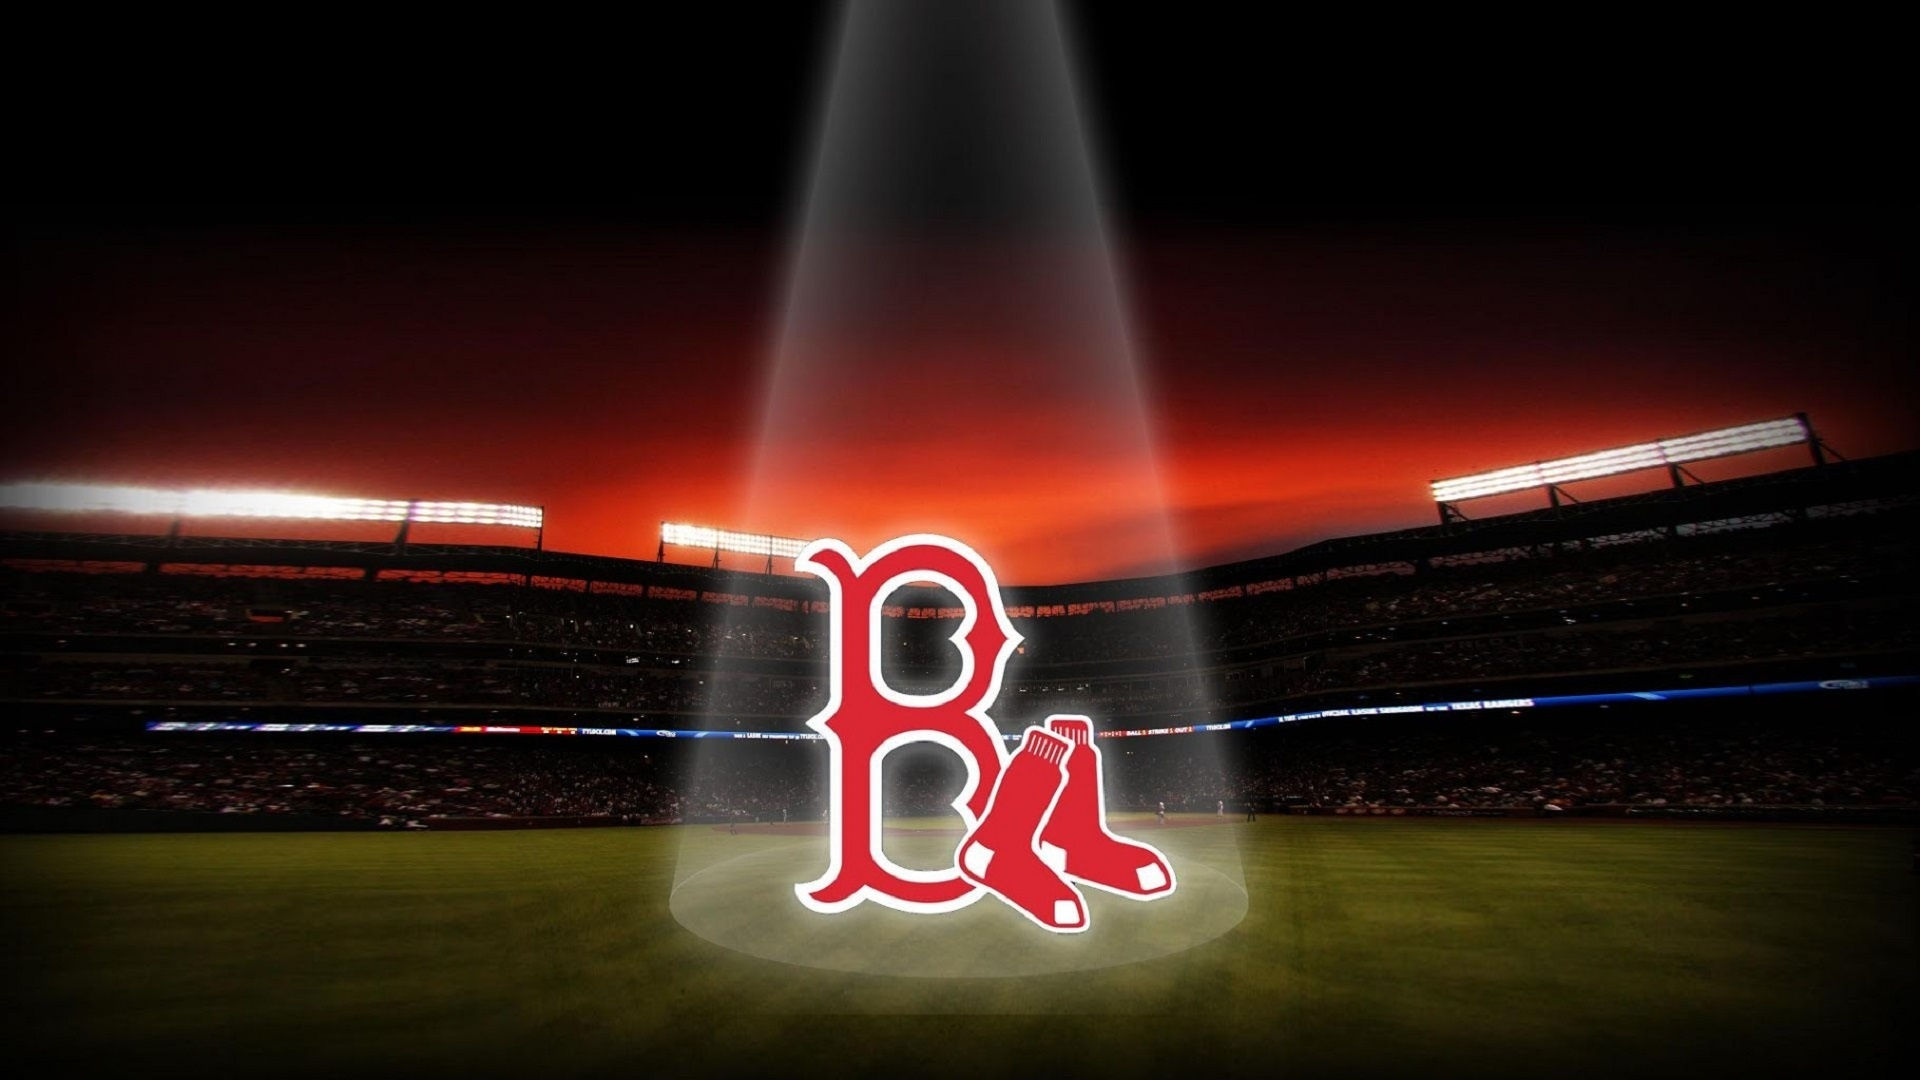 Boston Red Sox Logo Desktop Backgrounds Page 2 of 3 wallpaperwiki 1920x1080